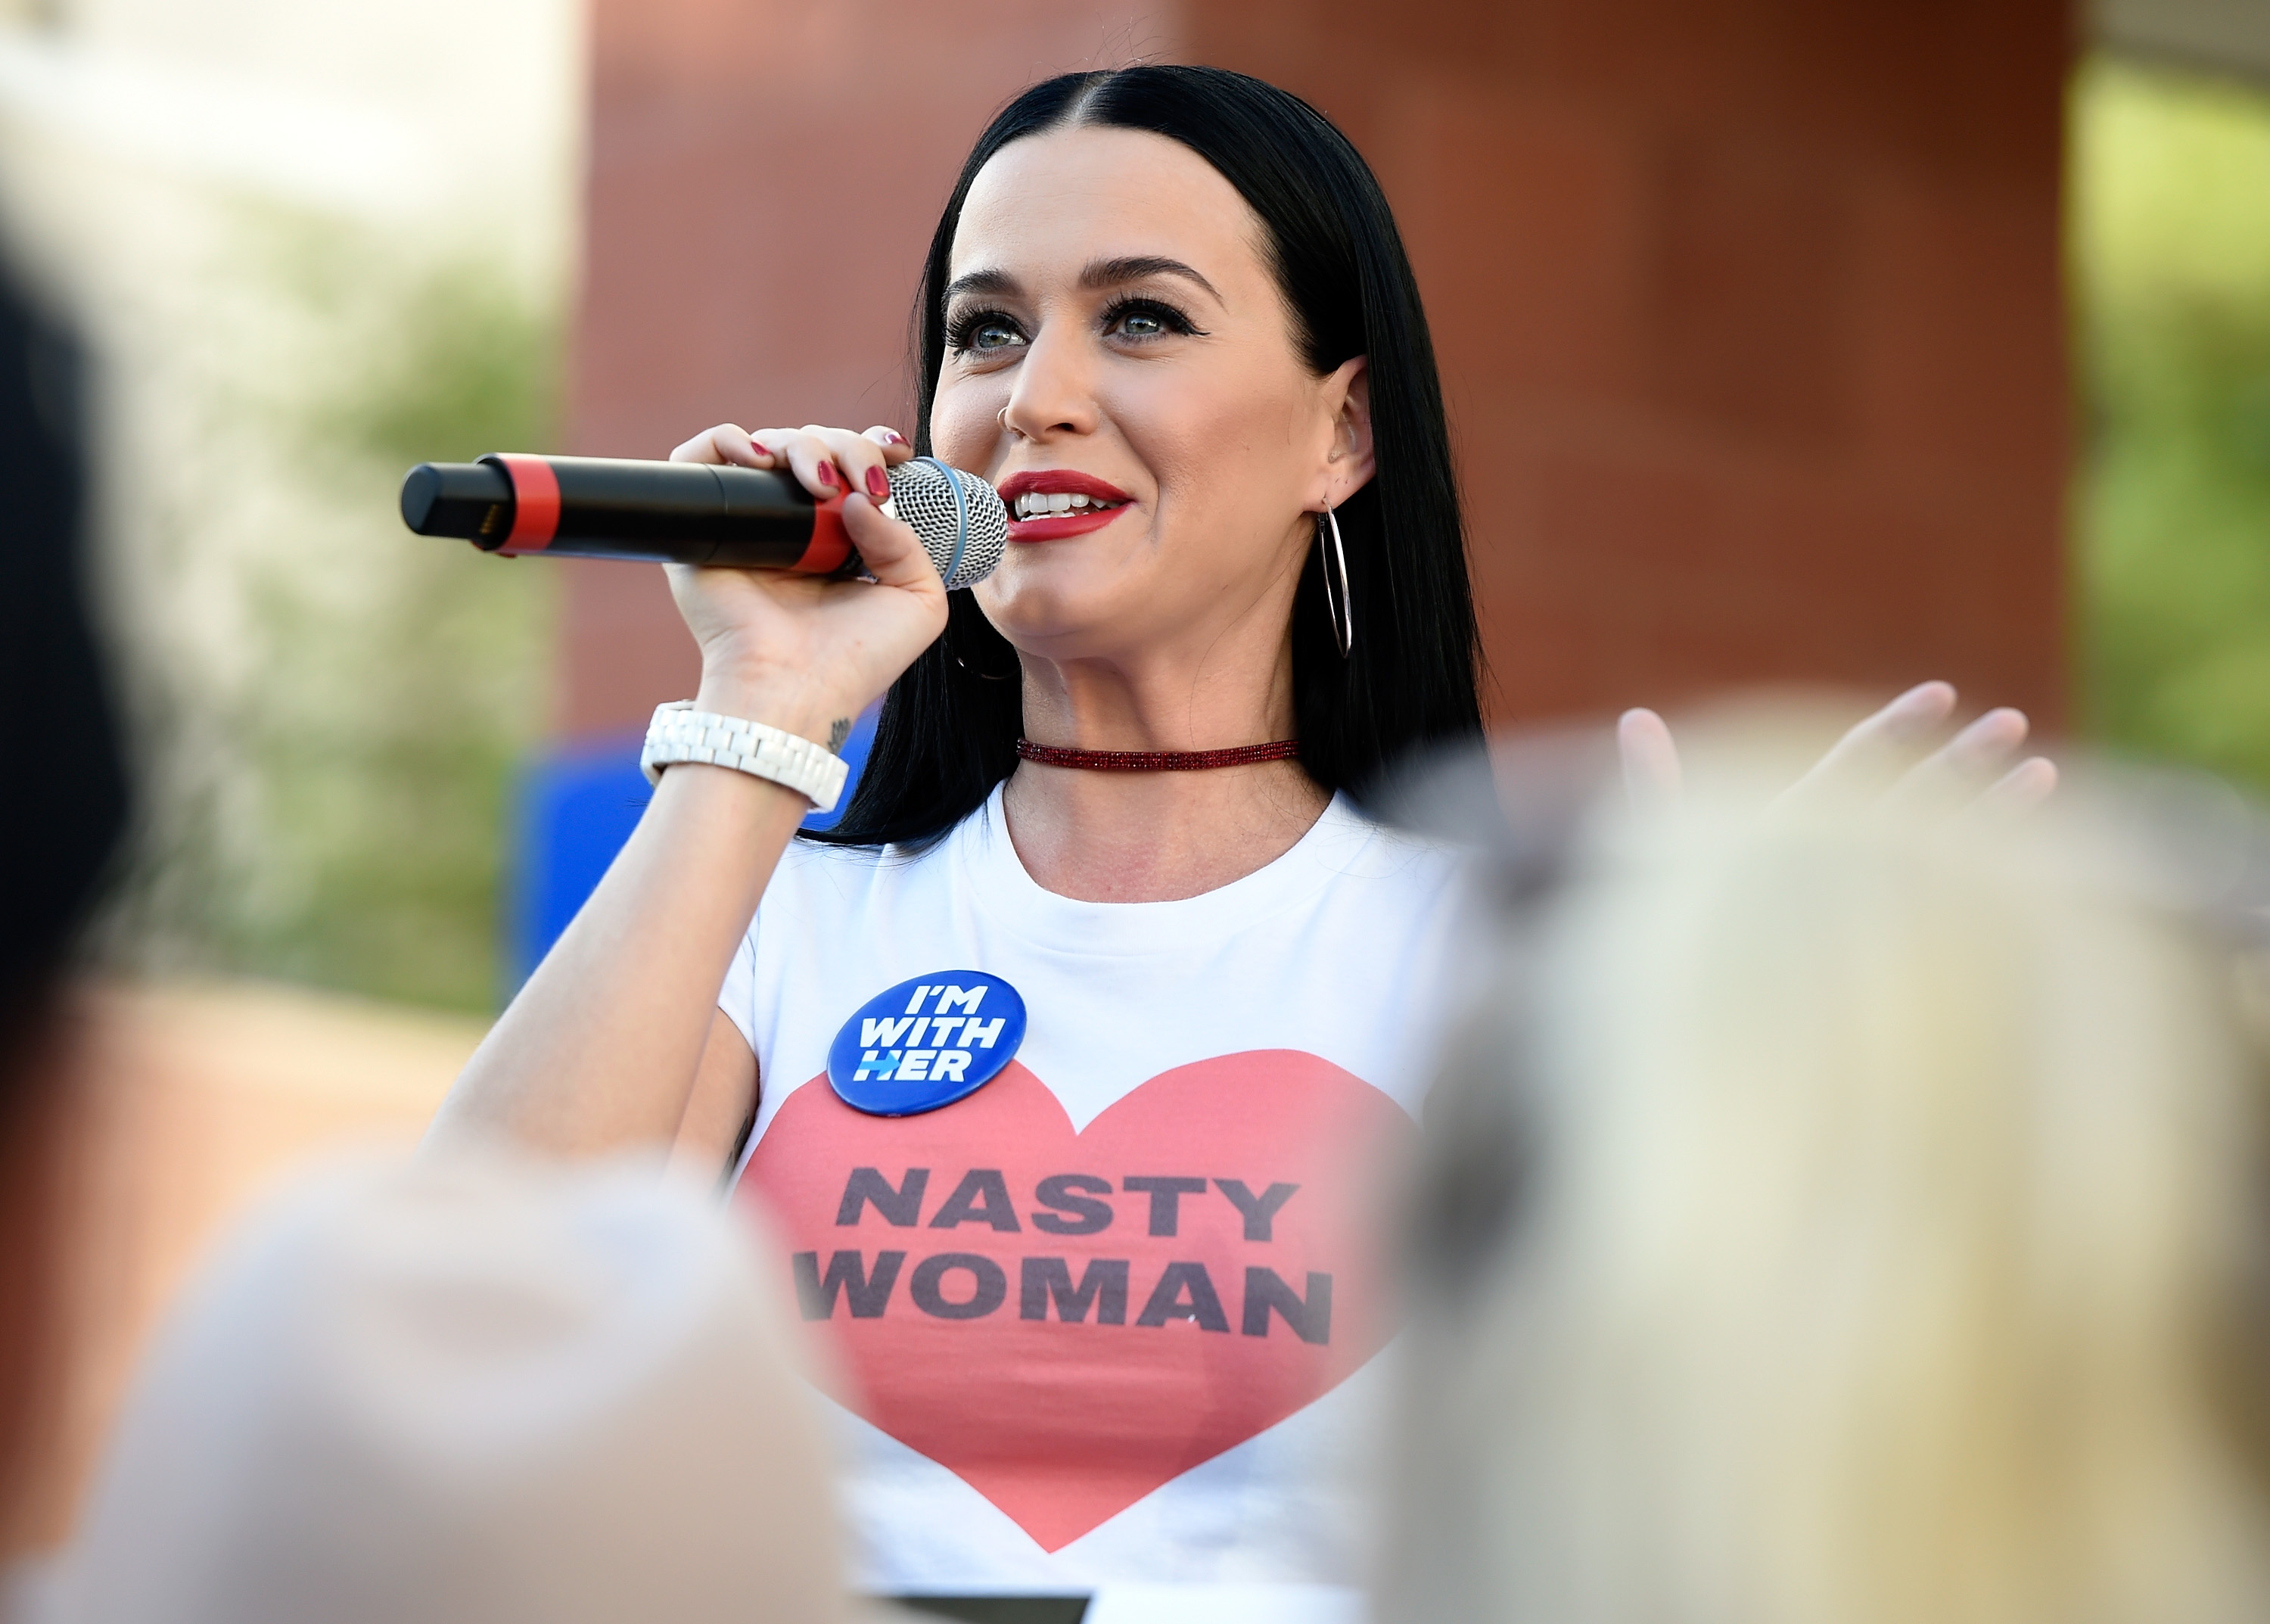 Singer Katy Perry speaks during a get out the early vote rally as she campaigns for Democratic presidential candidate Hillary Clinton at UNLV on Oct. 22, 2016 in Las Vegas, Nevada.